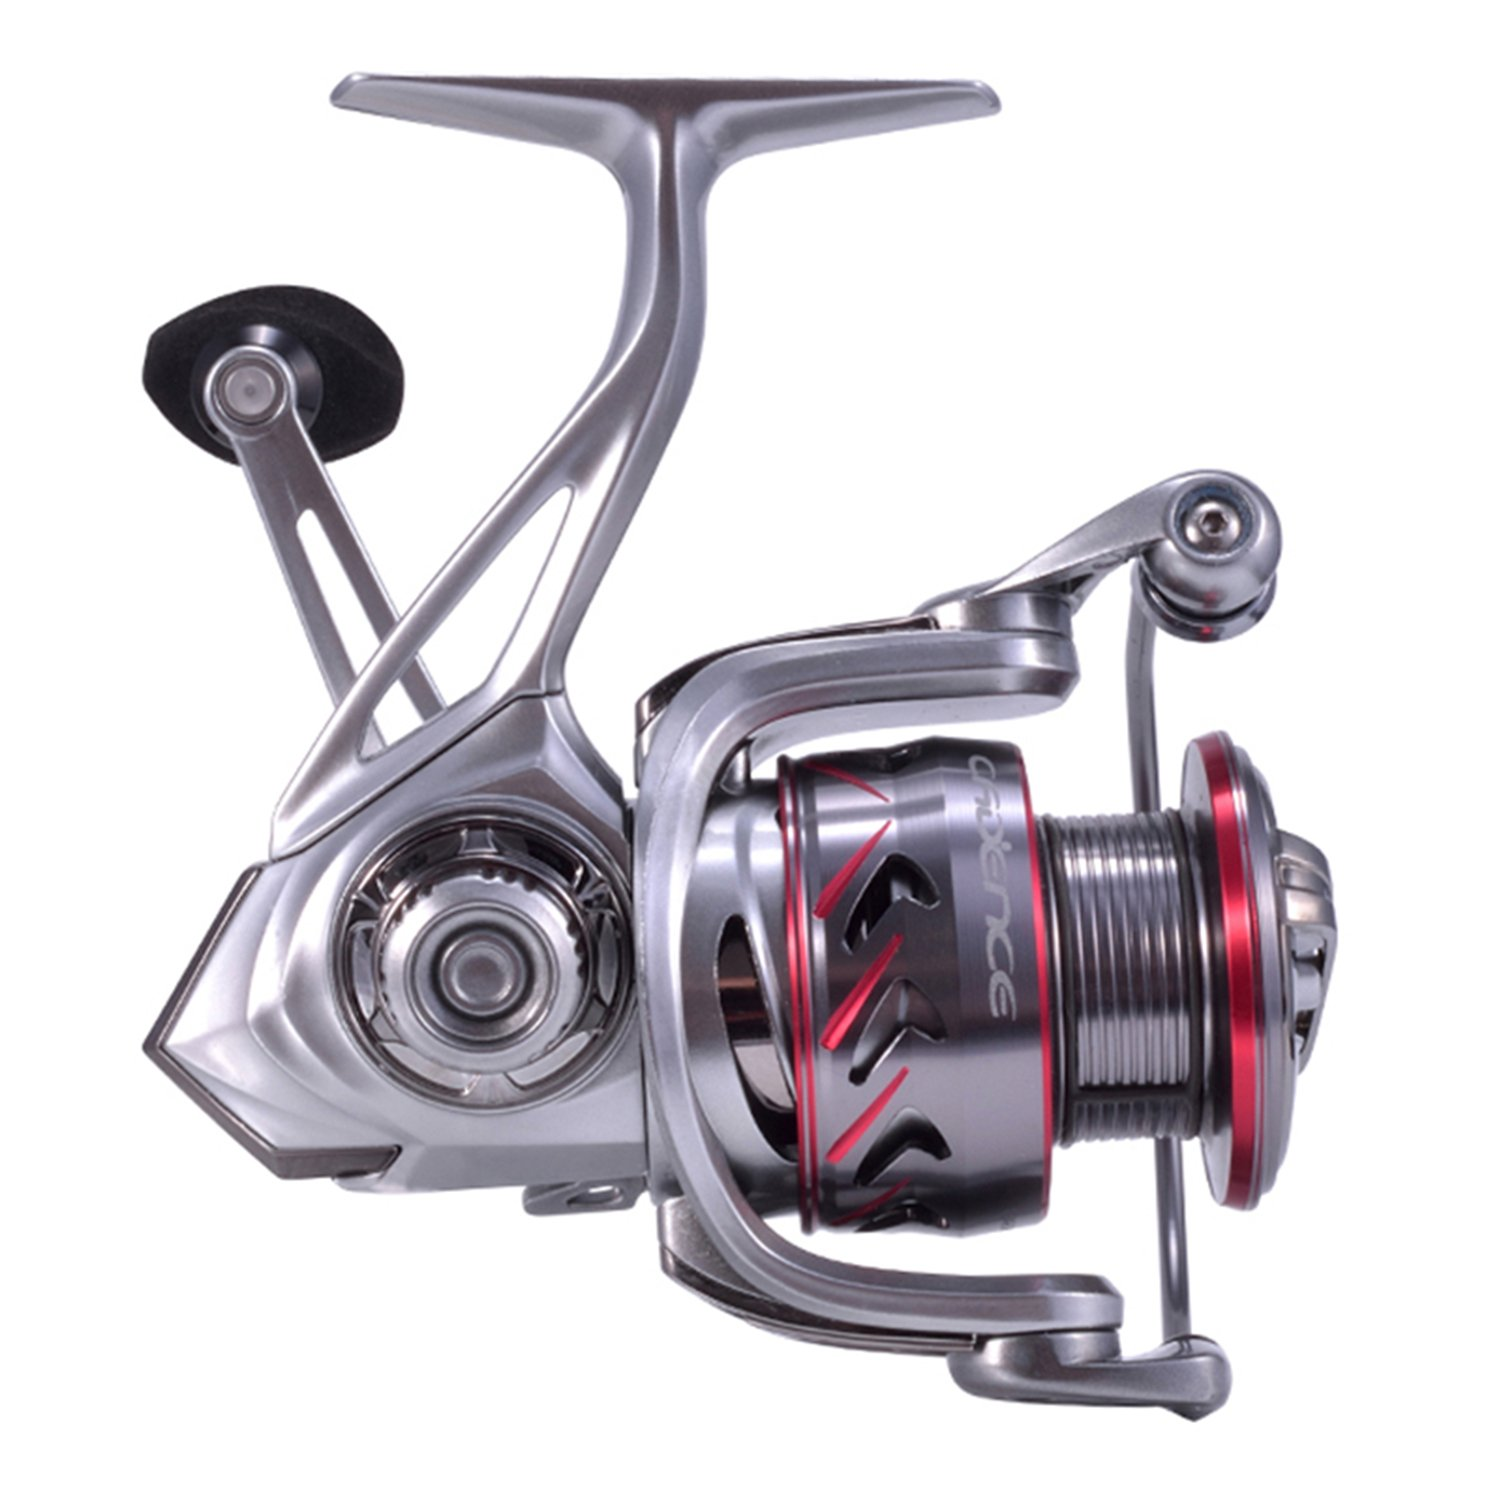 Cadence Spinning Reel, CS7 Strong Aluminum Frame Fishing Reel with 10 Durable Corrosion Resistant Bearings for Saltwater or Freshwater,Super Smooth Powerful Reel with 29LBs Max Drag 6.2 1 Spin Reel